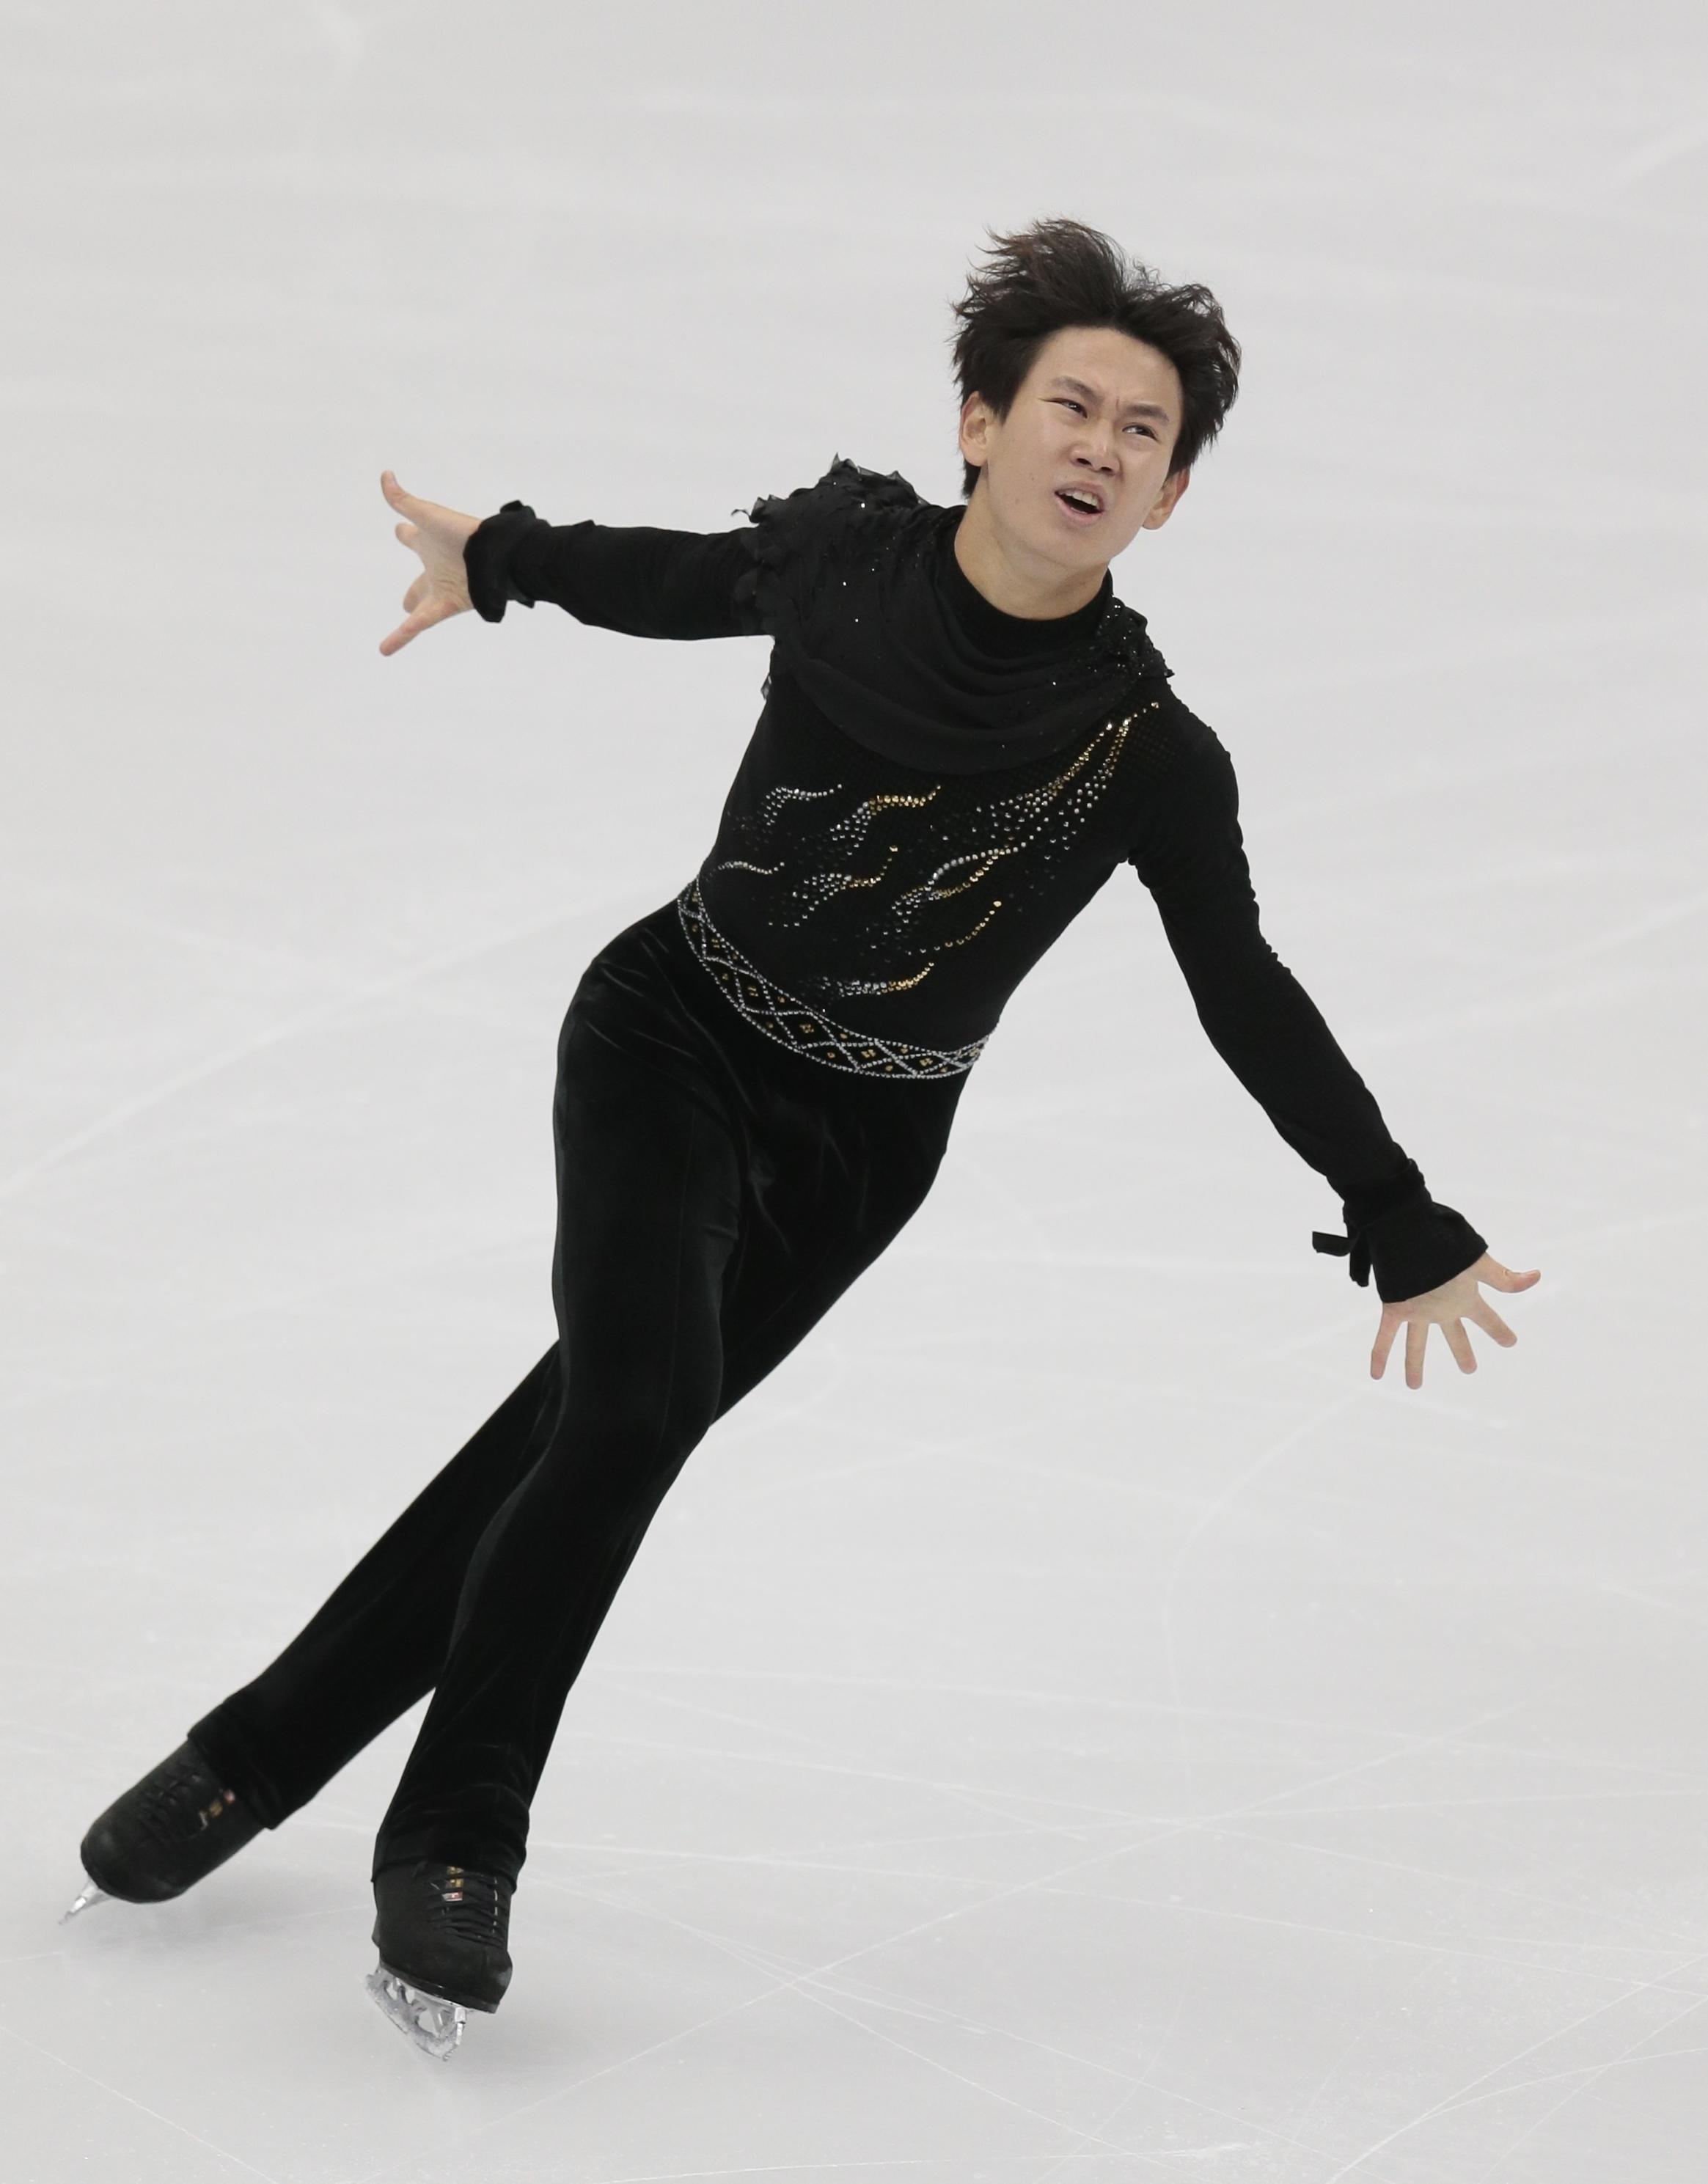 Denis Ten was an esteemed figure skater, but had suffered with injury the past few years